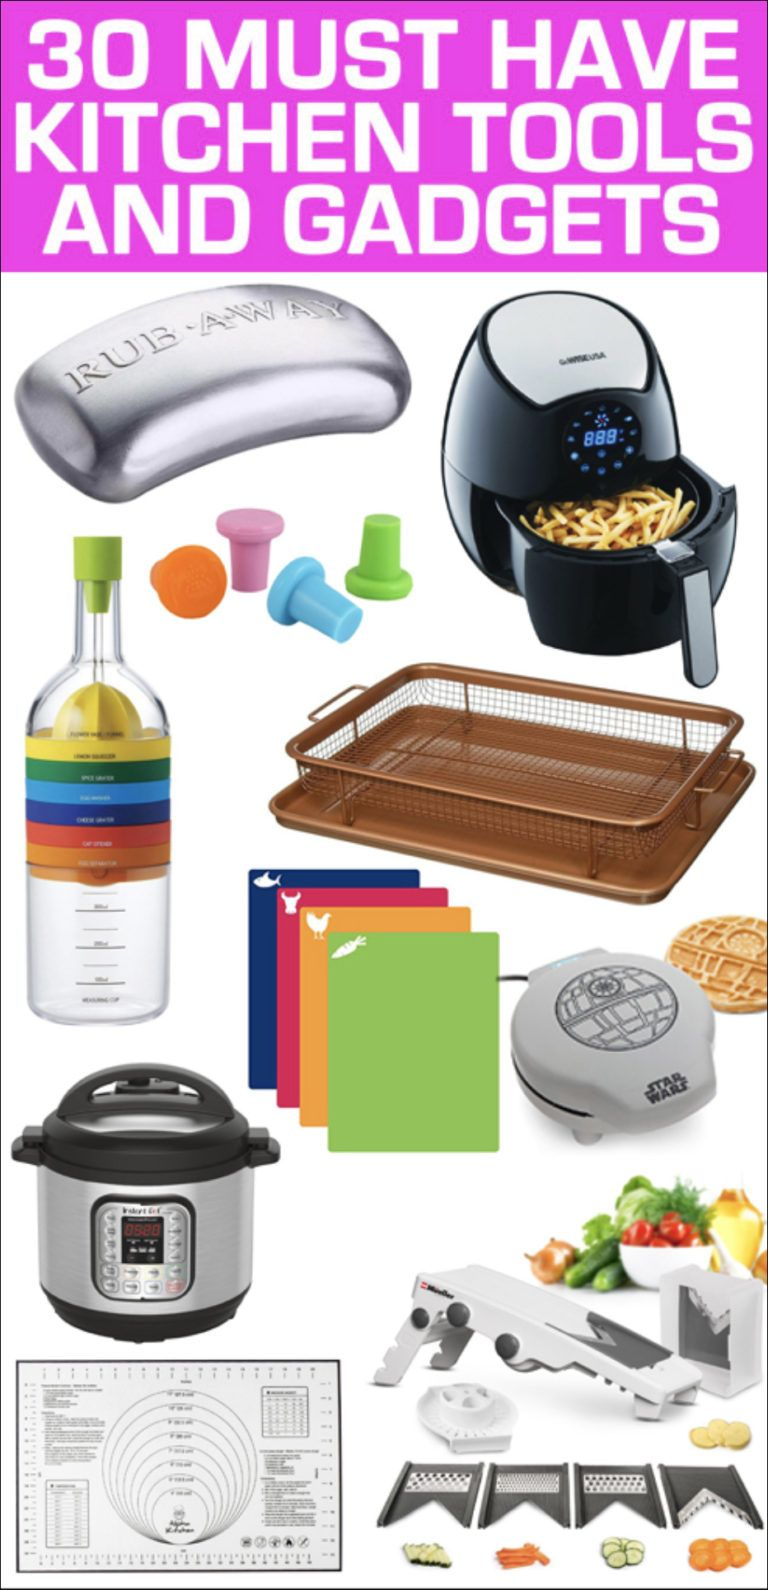 30 Must Have Kitchen Gadgets - Preparation Tools ...